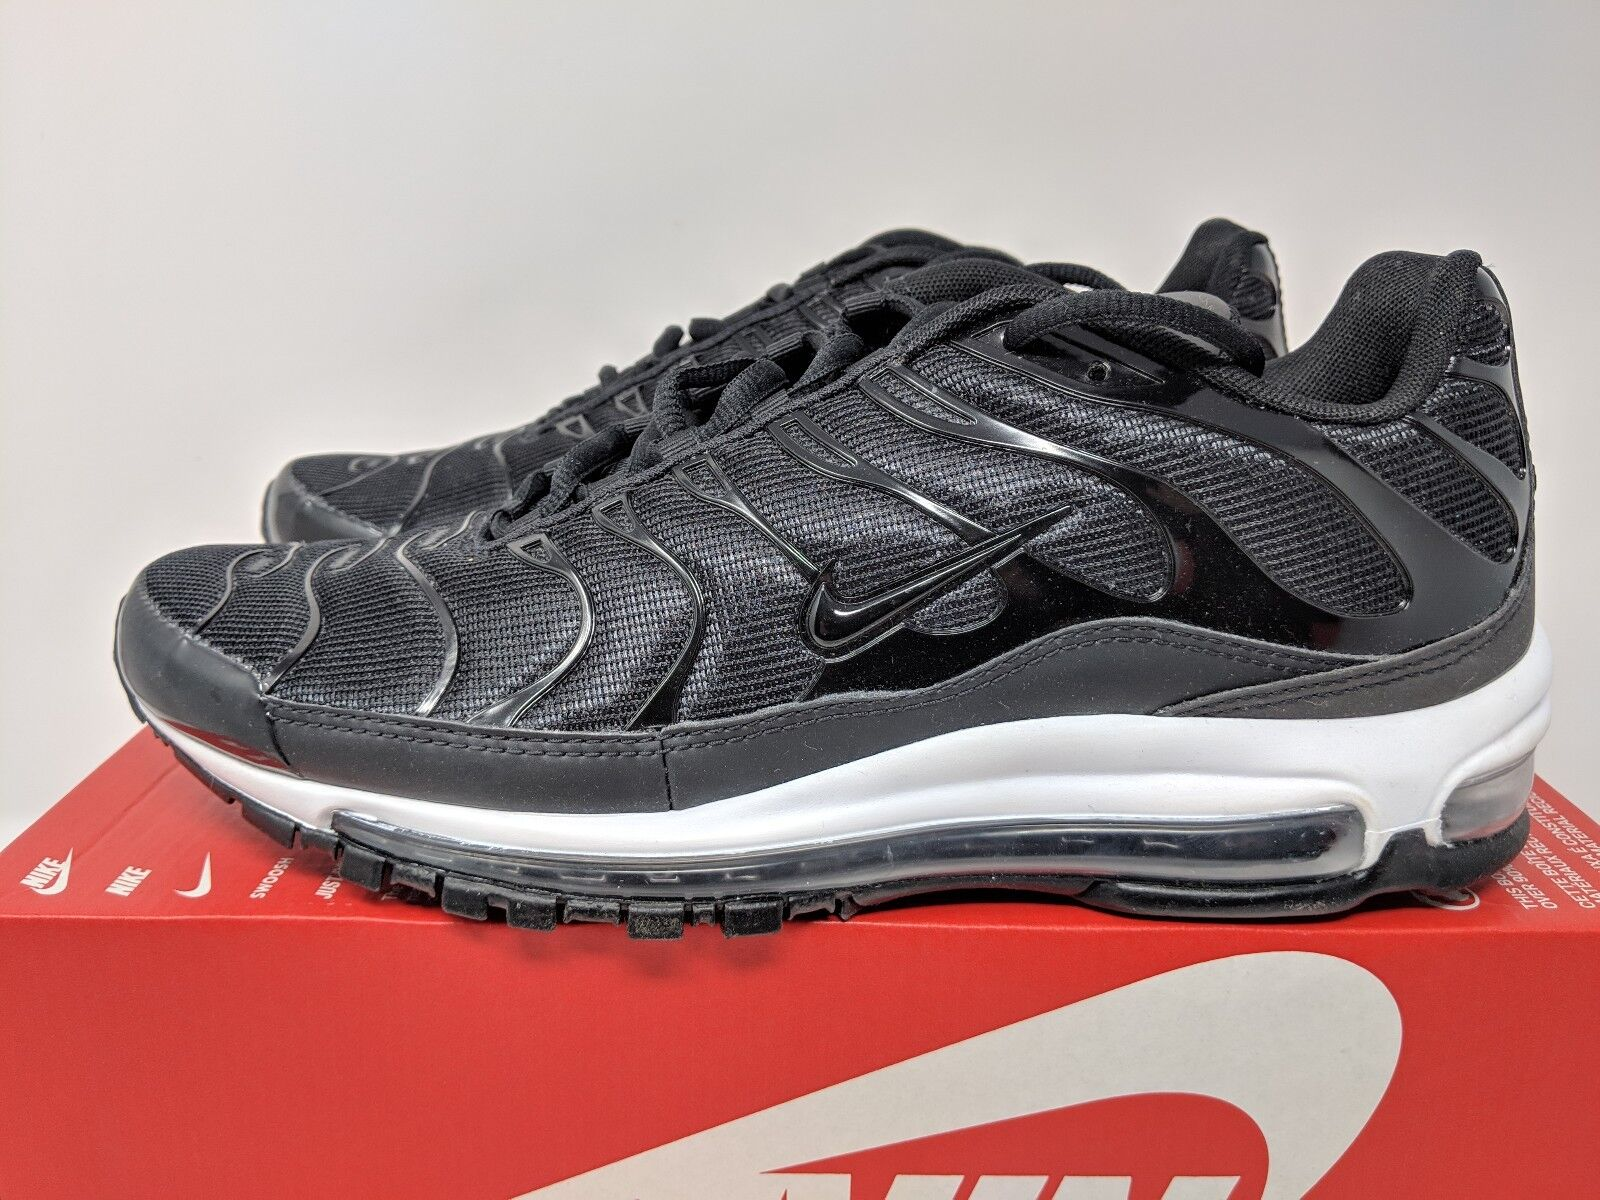 15728e6b1a6 NIKE MAX 97 PLUS (AH8144-001) BLACK ANTHRACITE WHITE Men 8.5 AIR SIZE  nbyxmz2421-Athletic Shoes